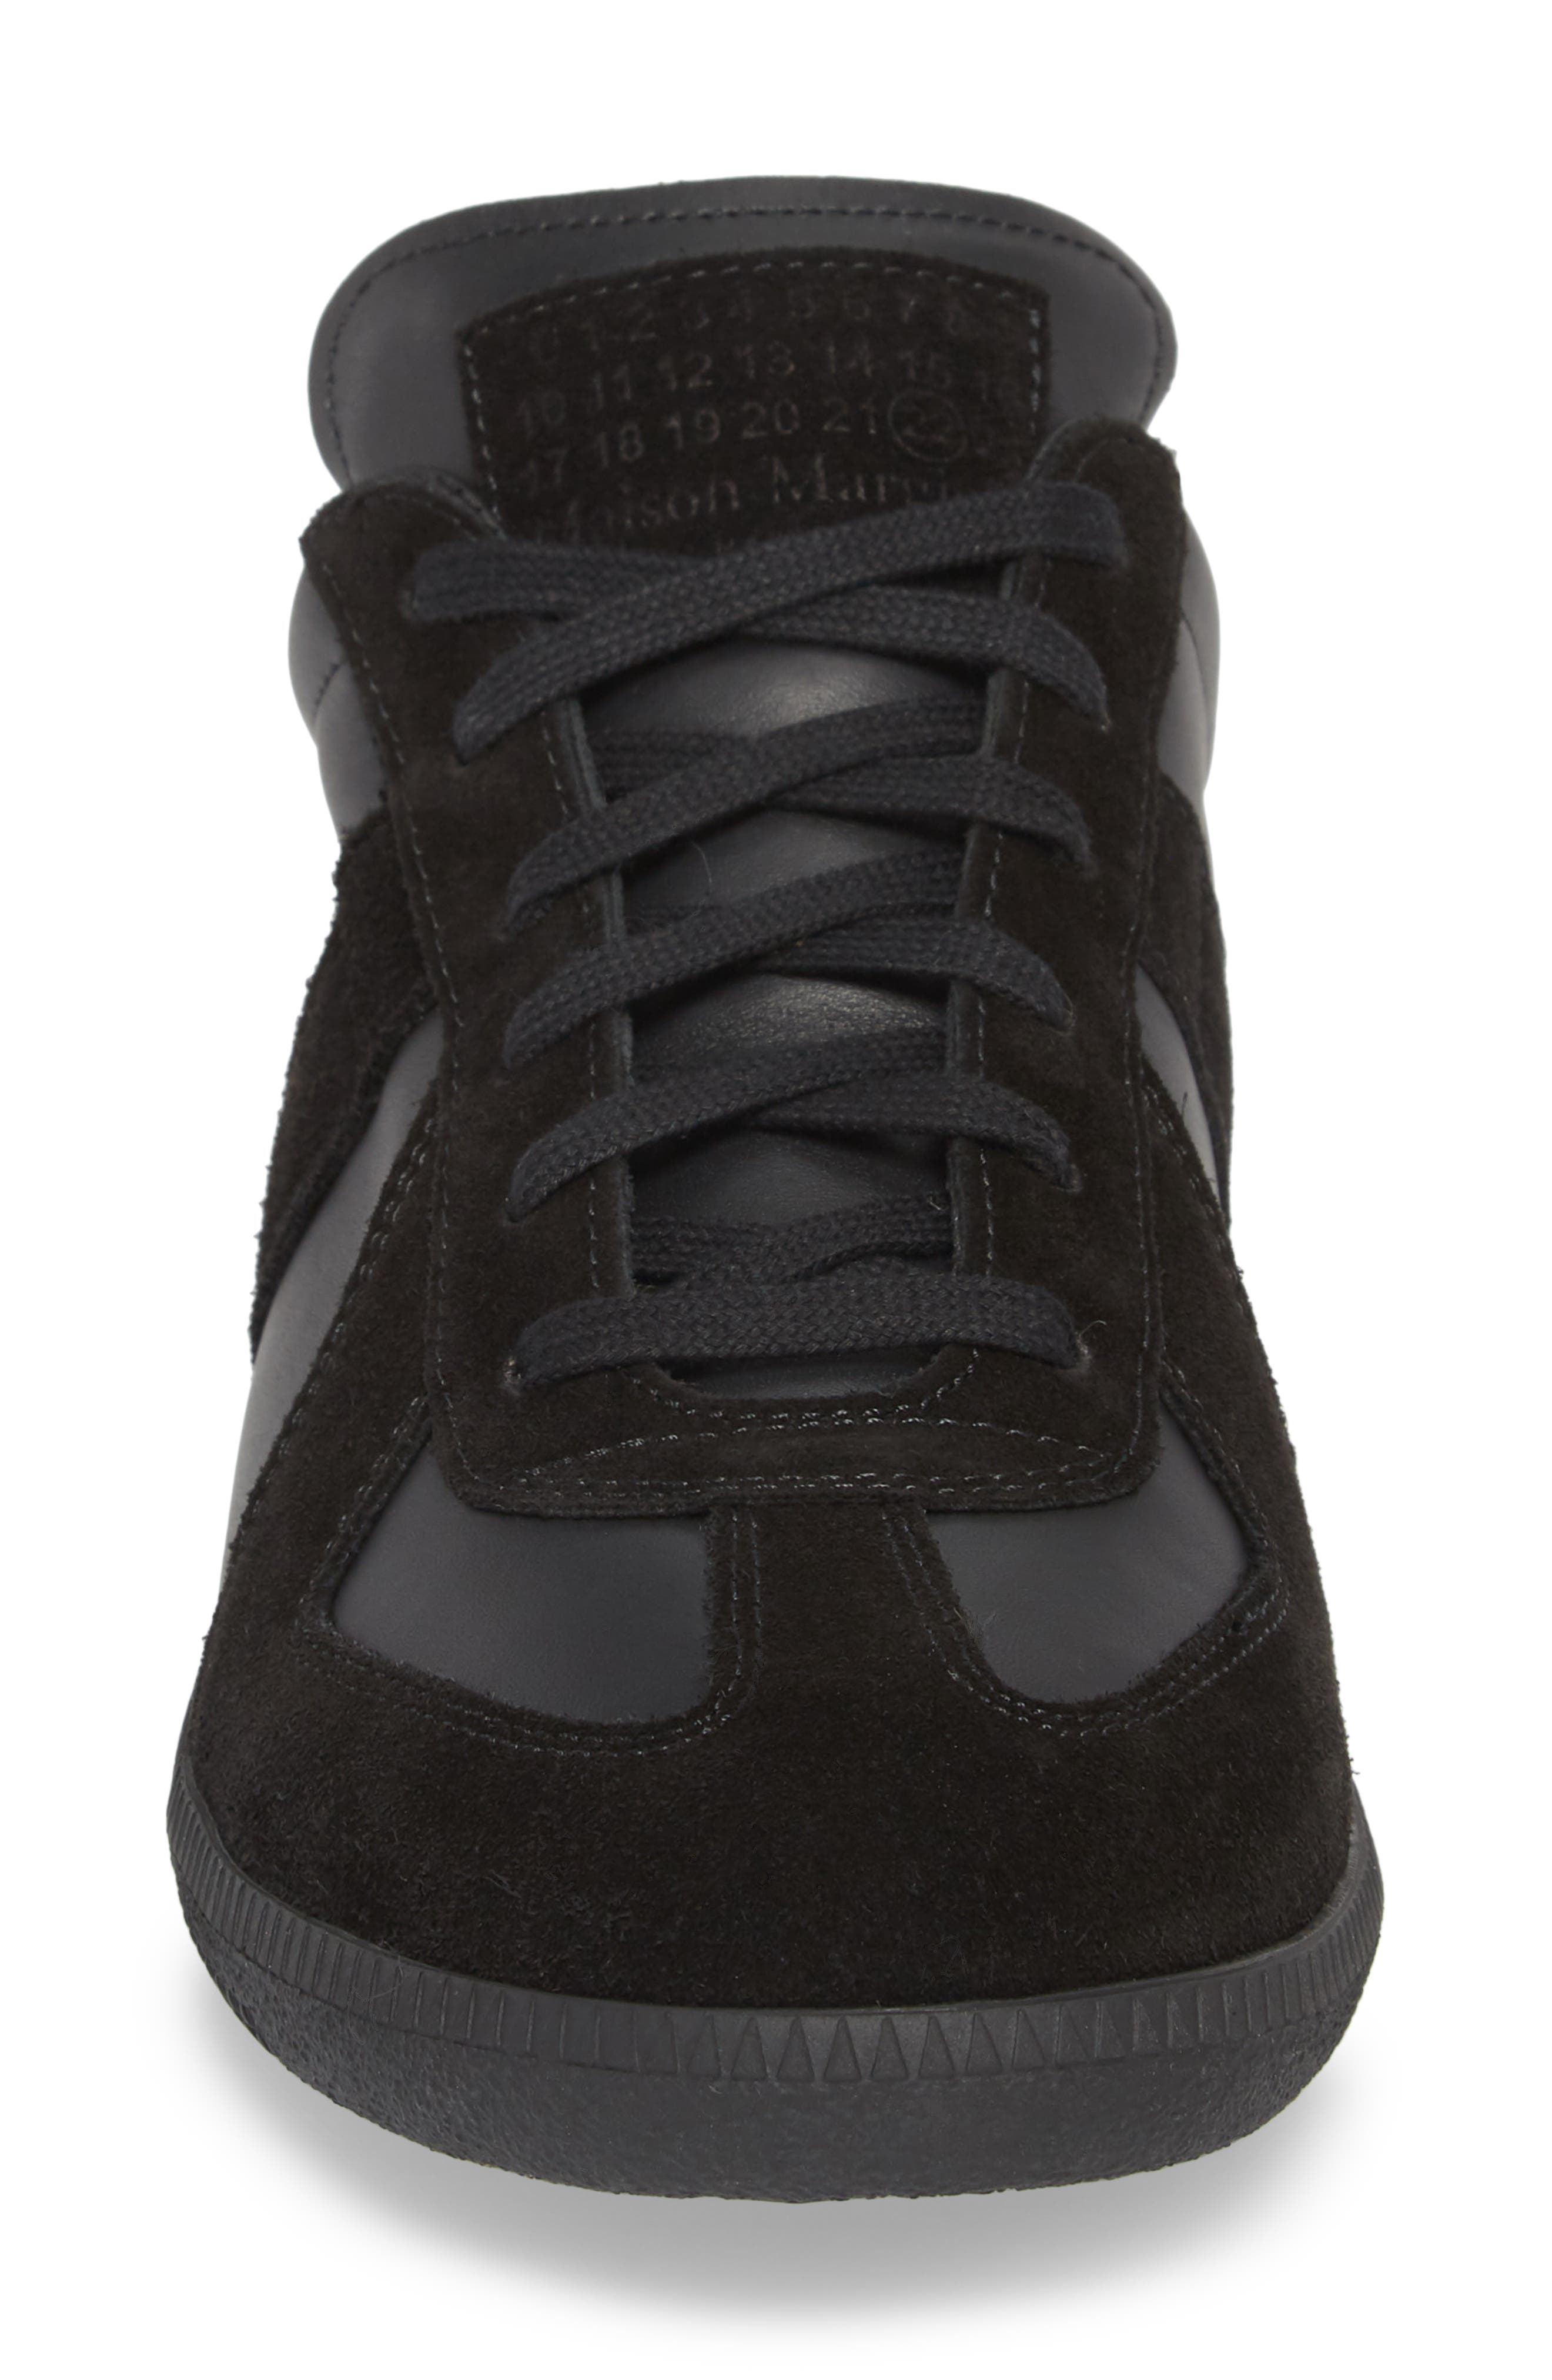 Maison Margiela Replica Low Top Sneaker,                             Alternate thumbnail 4, color,                             BLACK